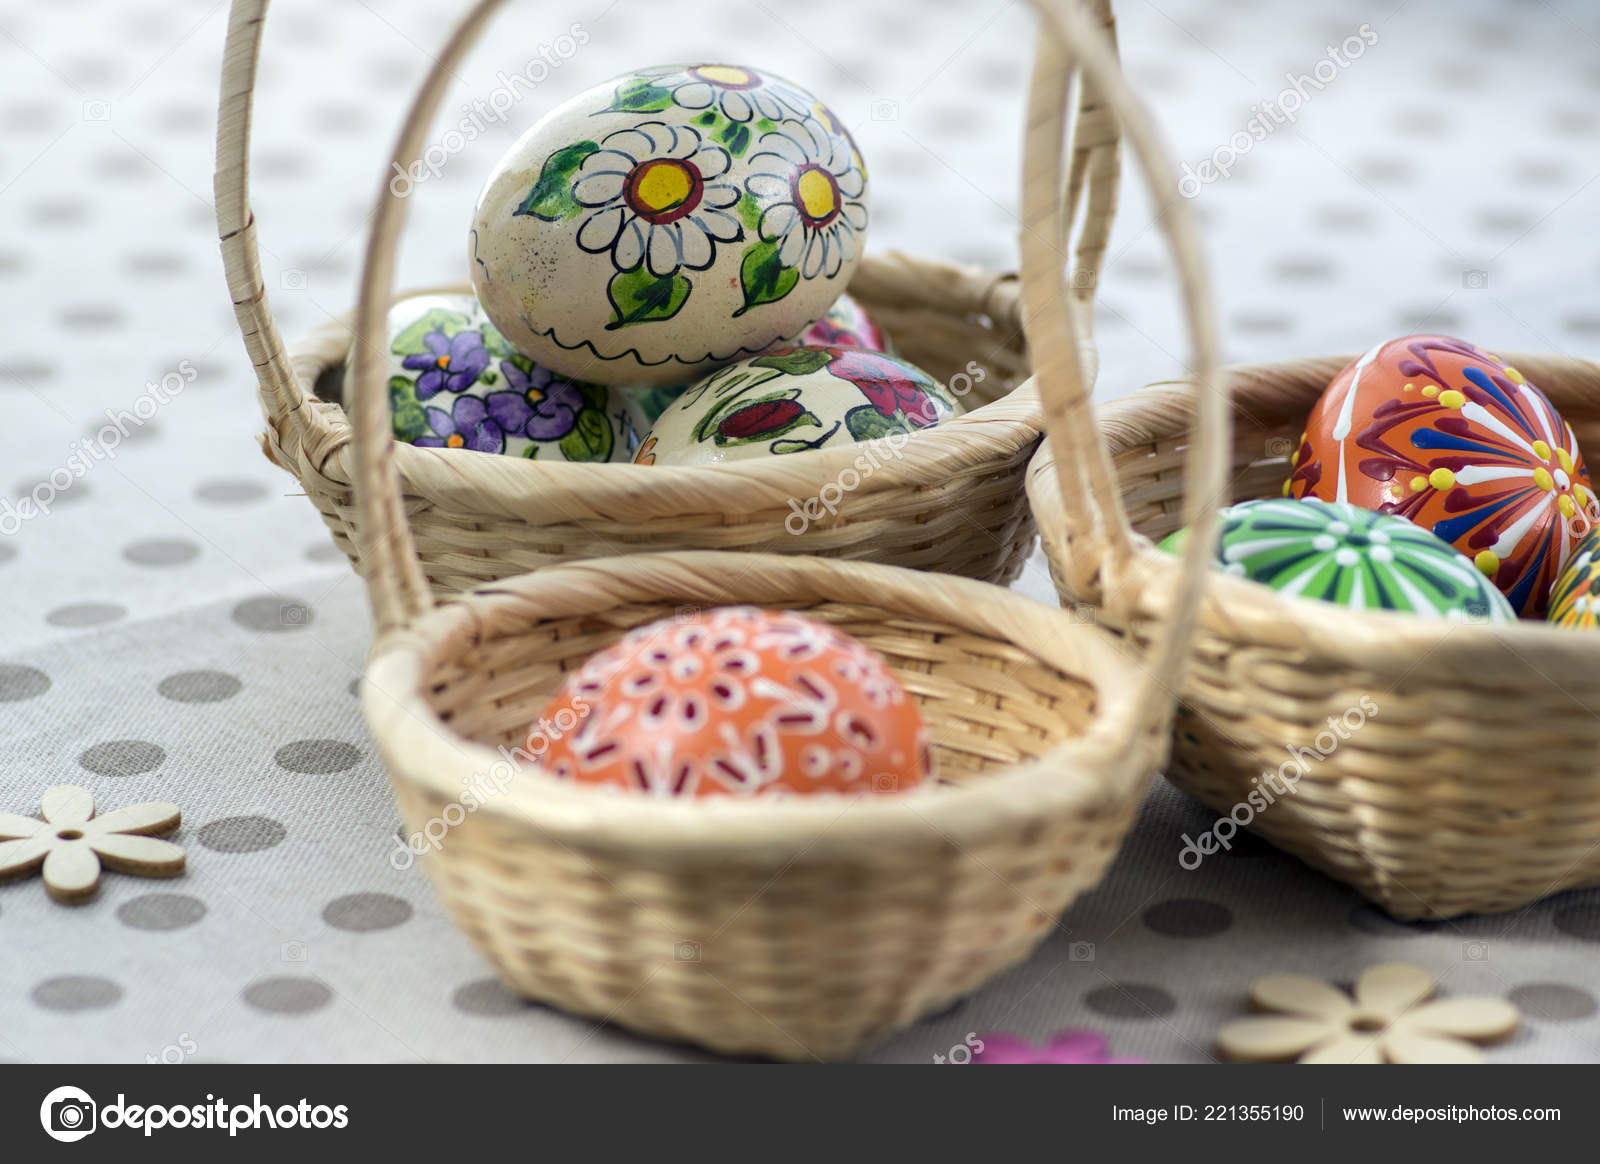 Group Wax Painted Easter Eggs Light Brown Wicker Baskets Wax ...